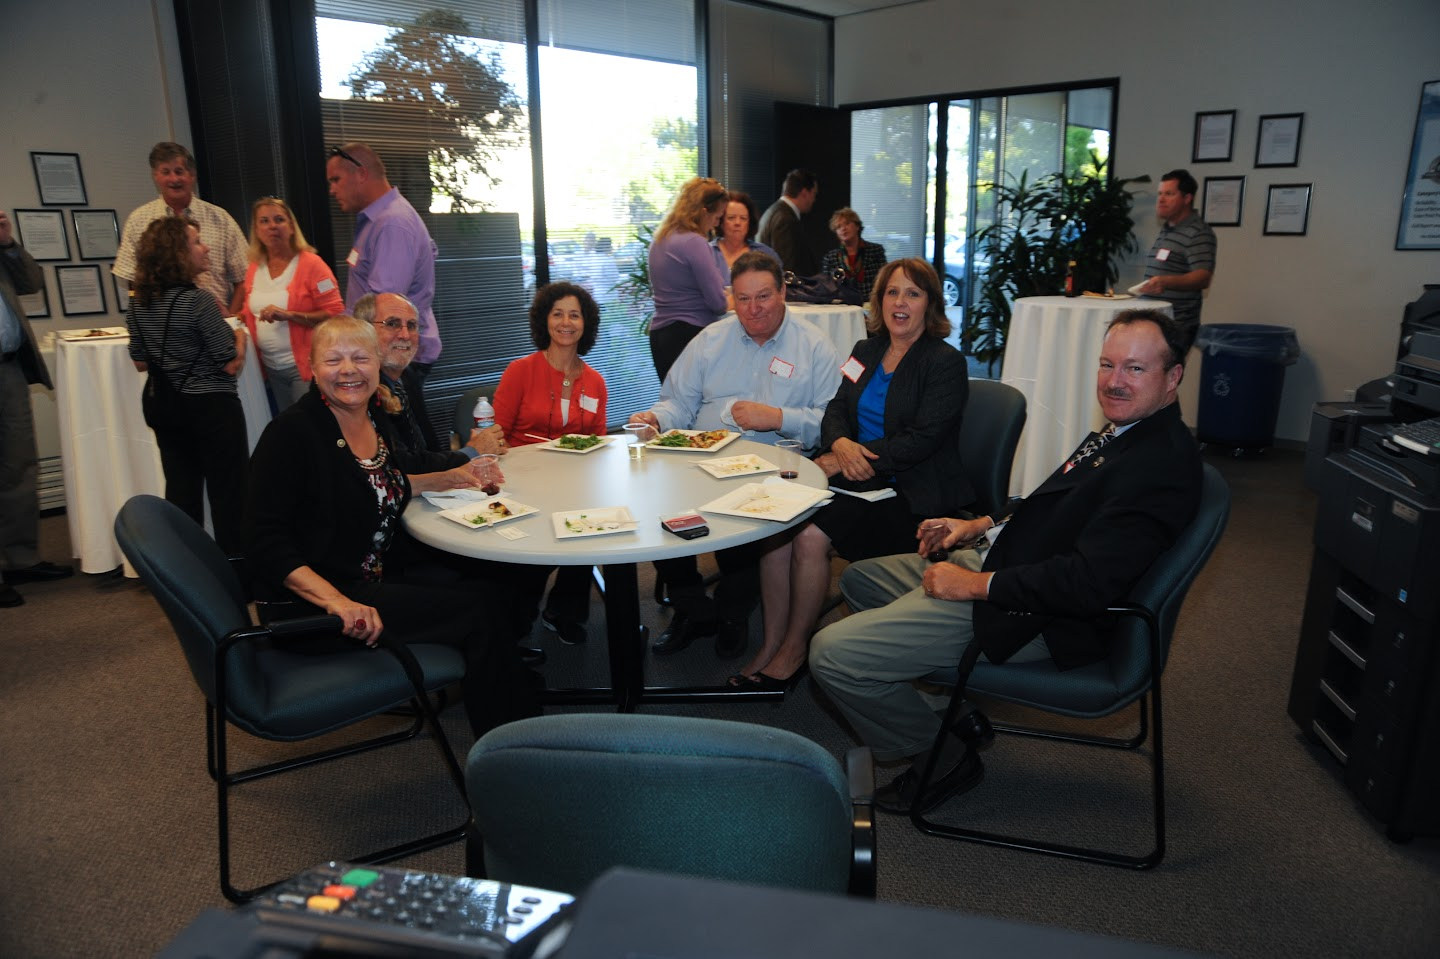 Rotary Means Business at Discovery Office with Rosso Pizzeria - DSC_6817.jpg